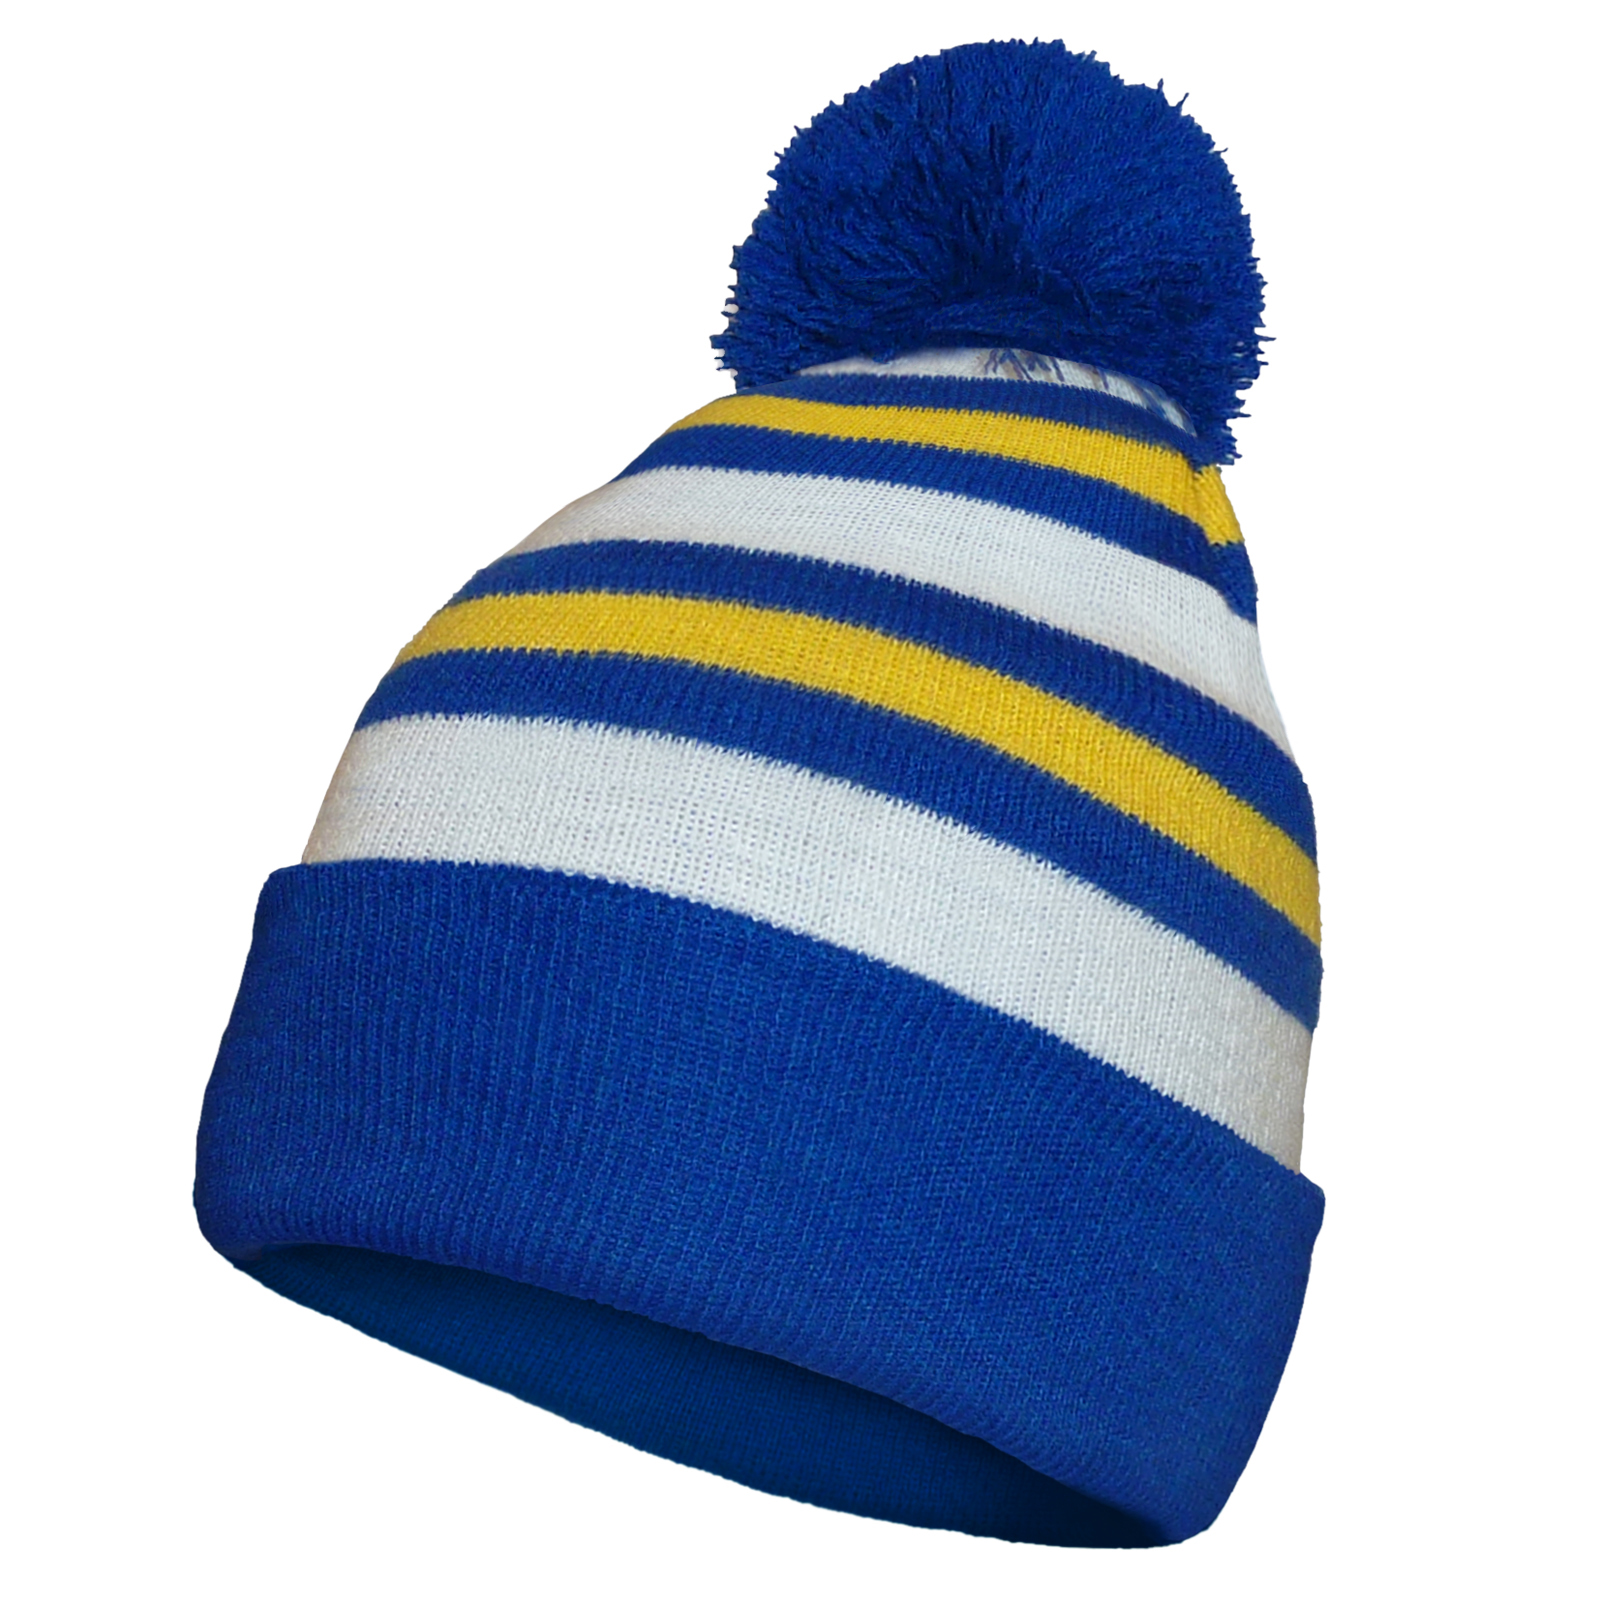 Leeds United Home Colours Retro Knitted Beanie Bobble Hat Gift.